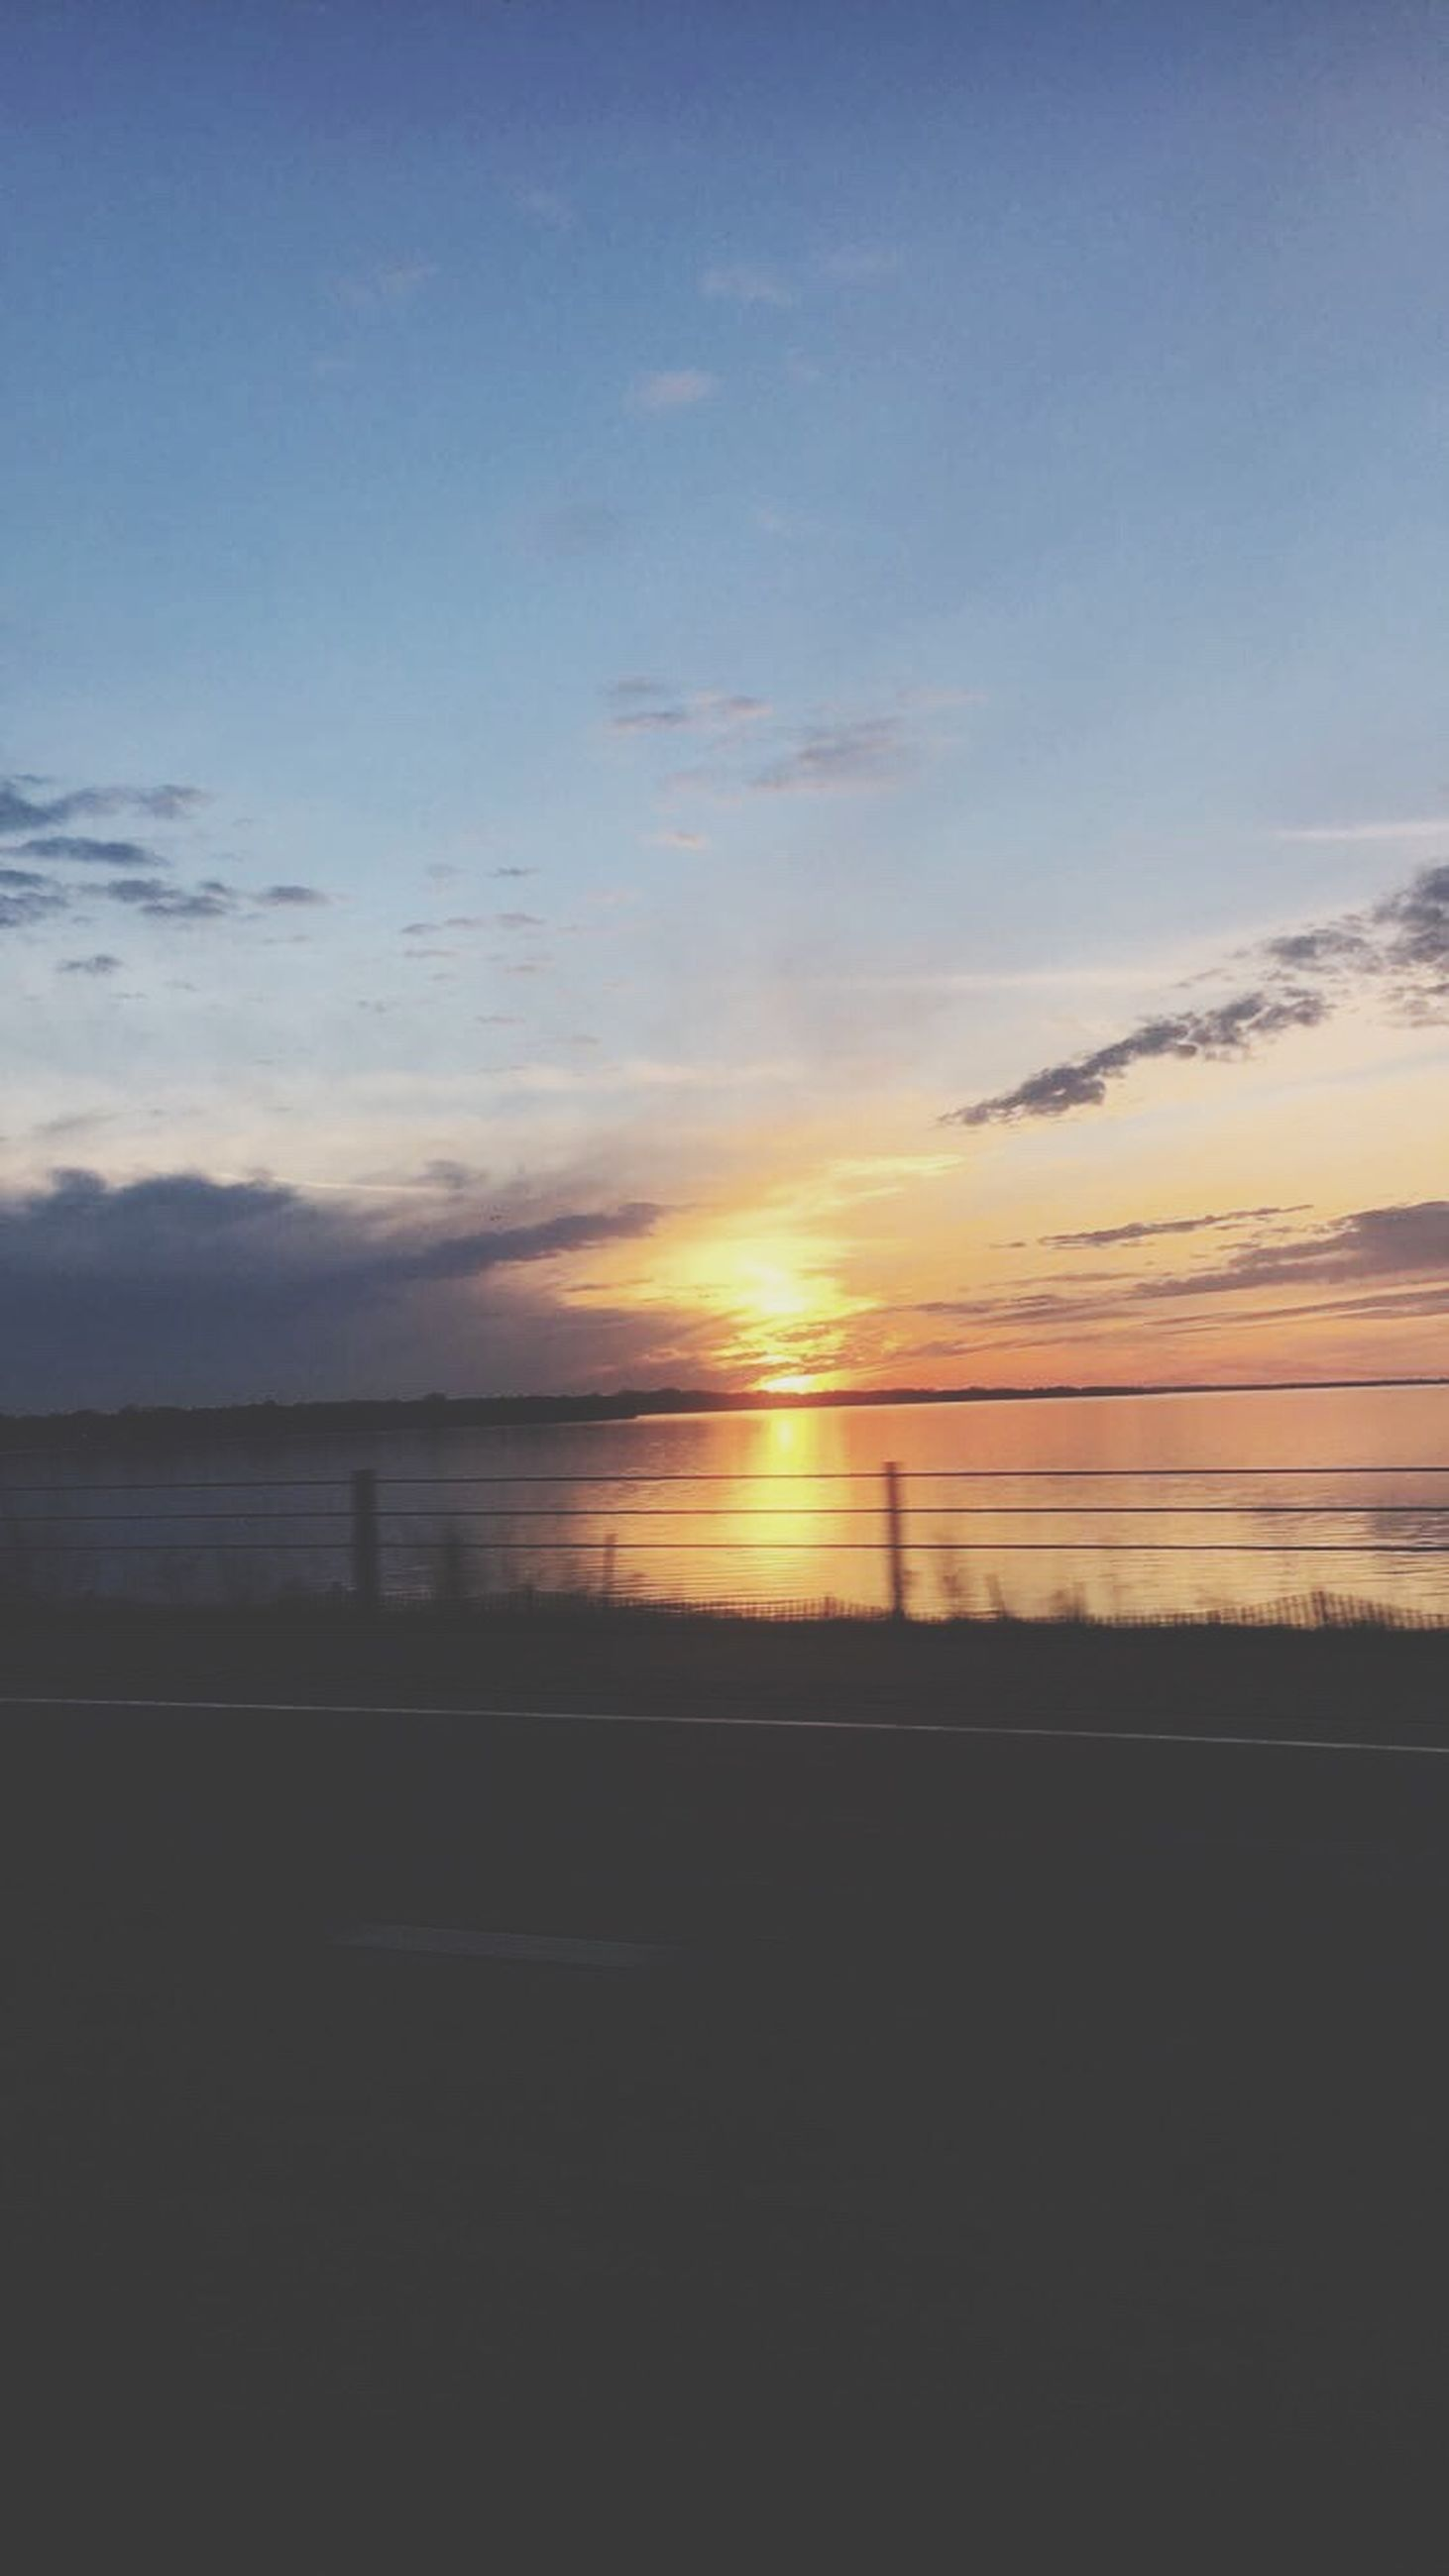 sunset, scenics, sea, beauty in nature, tranquil scene, tranquility, water, nature, beach, sky, outdoors, horizon over water, no people, road, cloud - sky, day